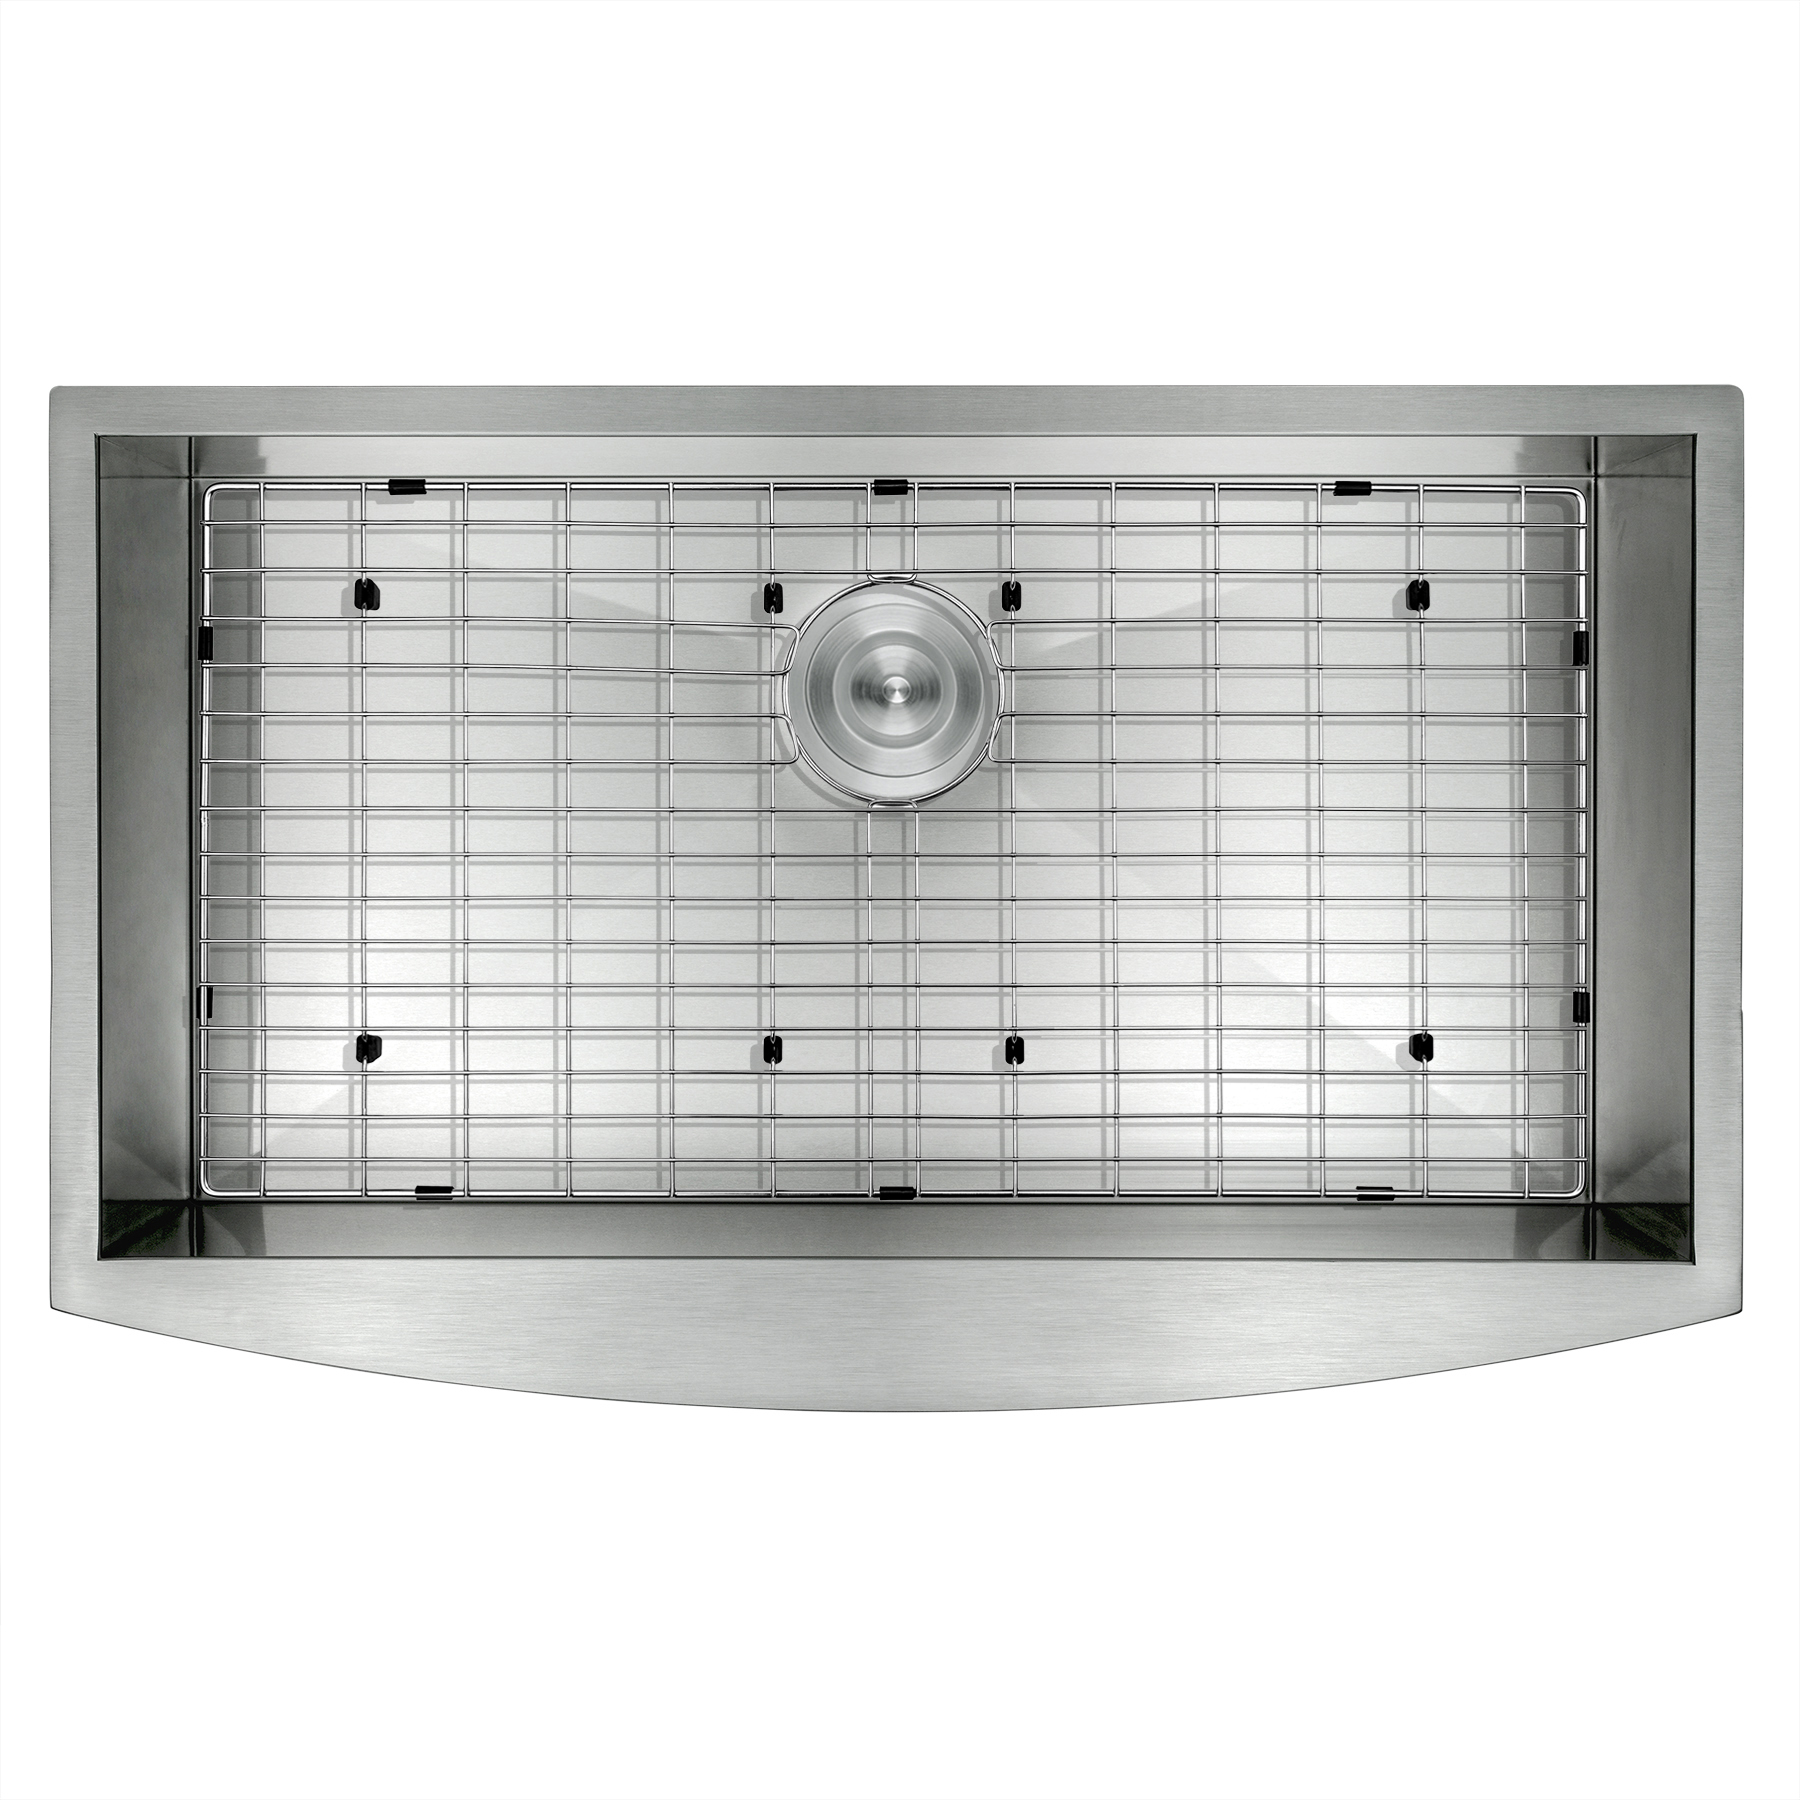 "Image of AKDY 33"" x 22"" x 9"" Handmade Apron Under Mount Basin Stainless Steel Kitchen Sink Dish Grid w/ Drain Kit"